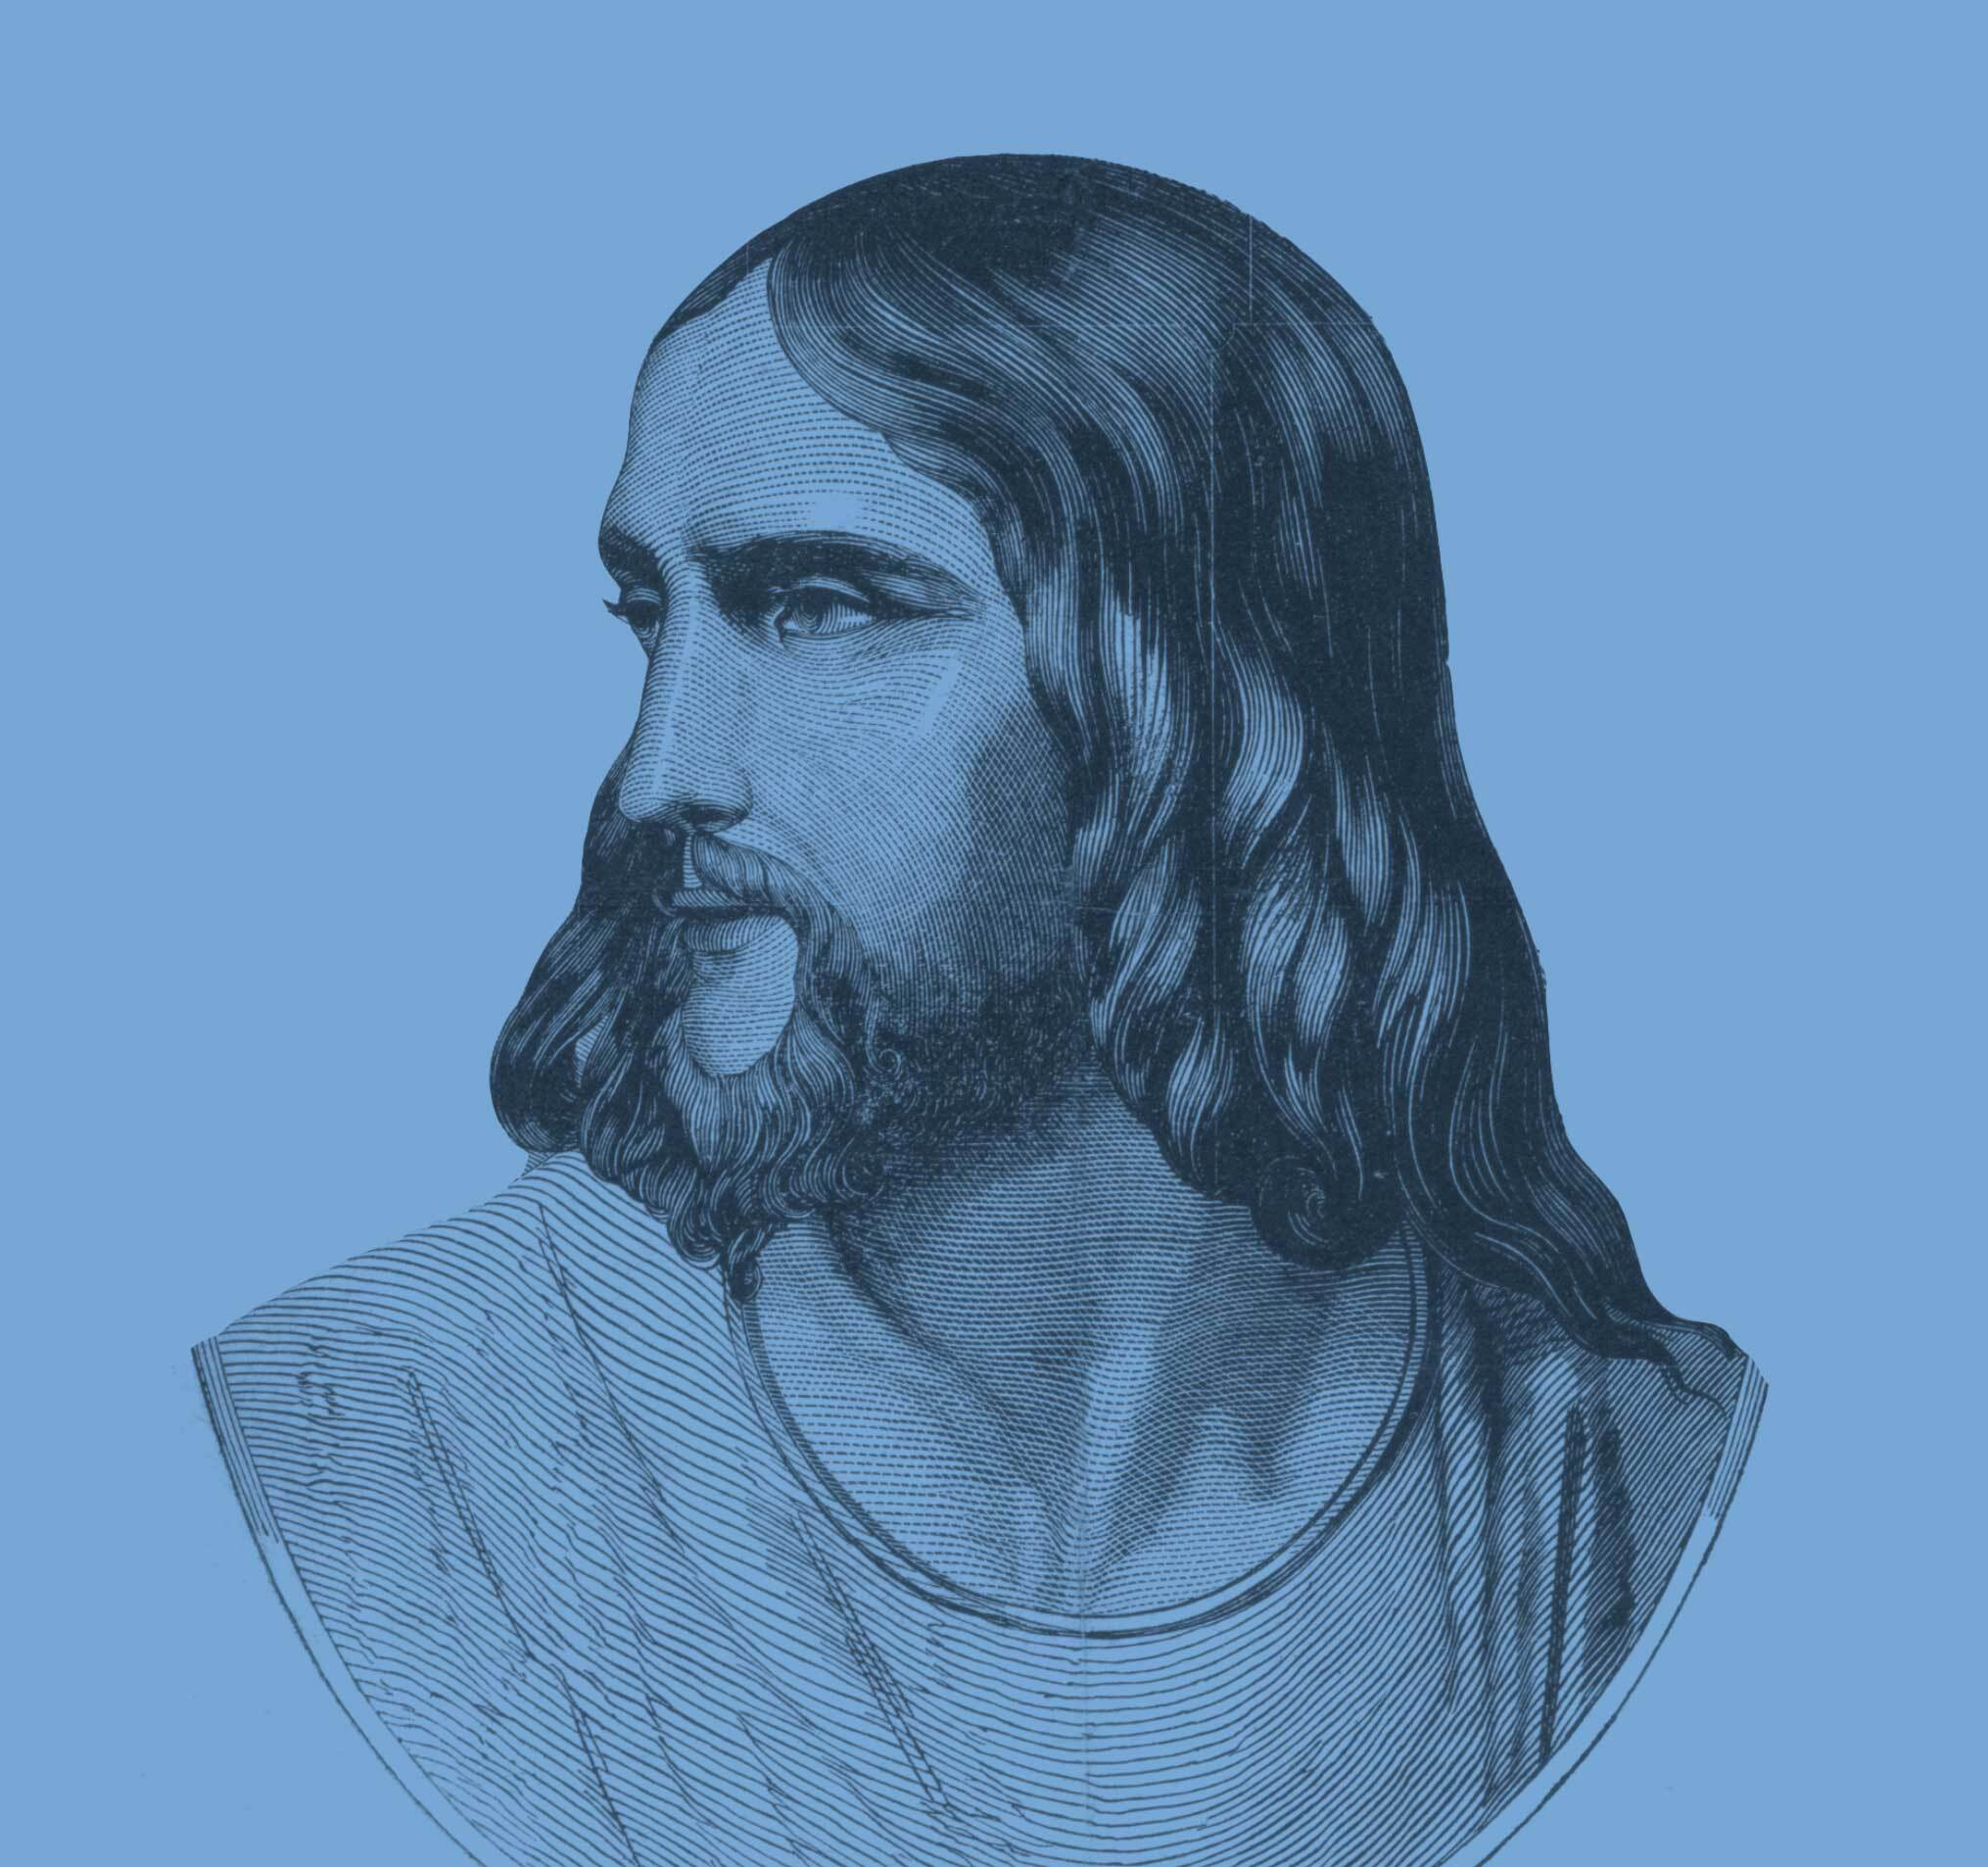 Line drawing of Jesus Christ.